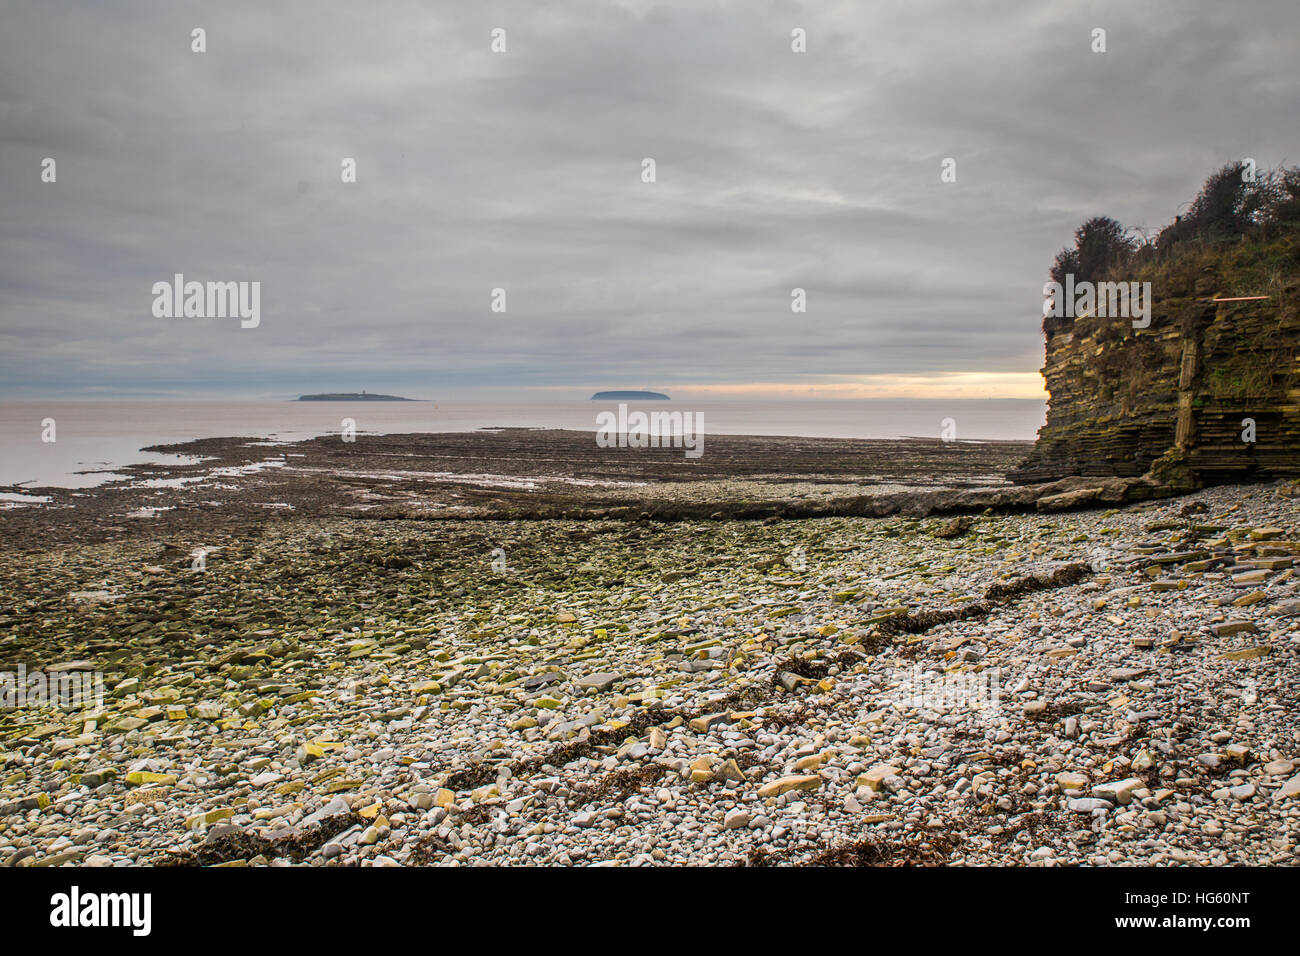 Flat Holm and Steep Holm viewed from Lavernock Point Beach. - Stock Image